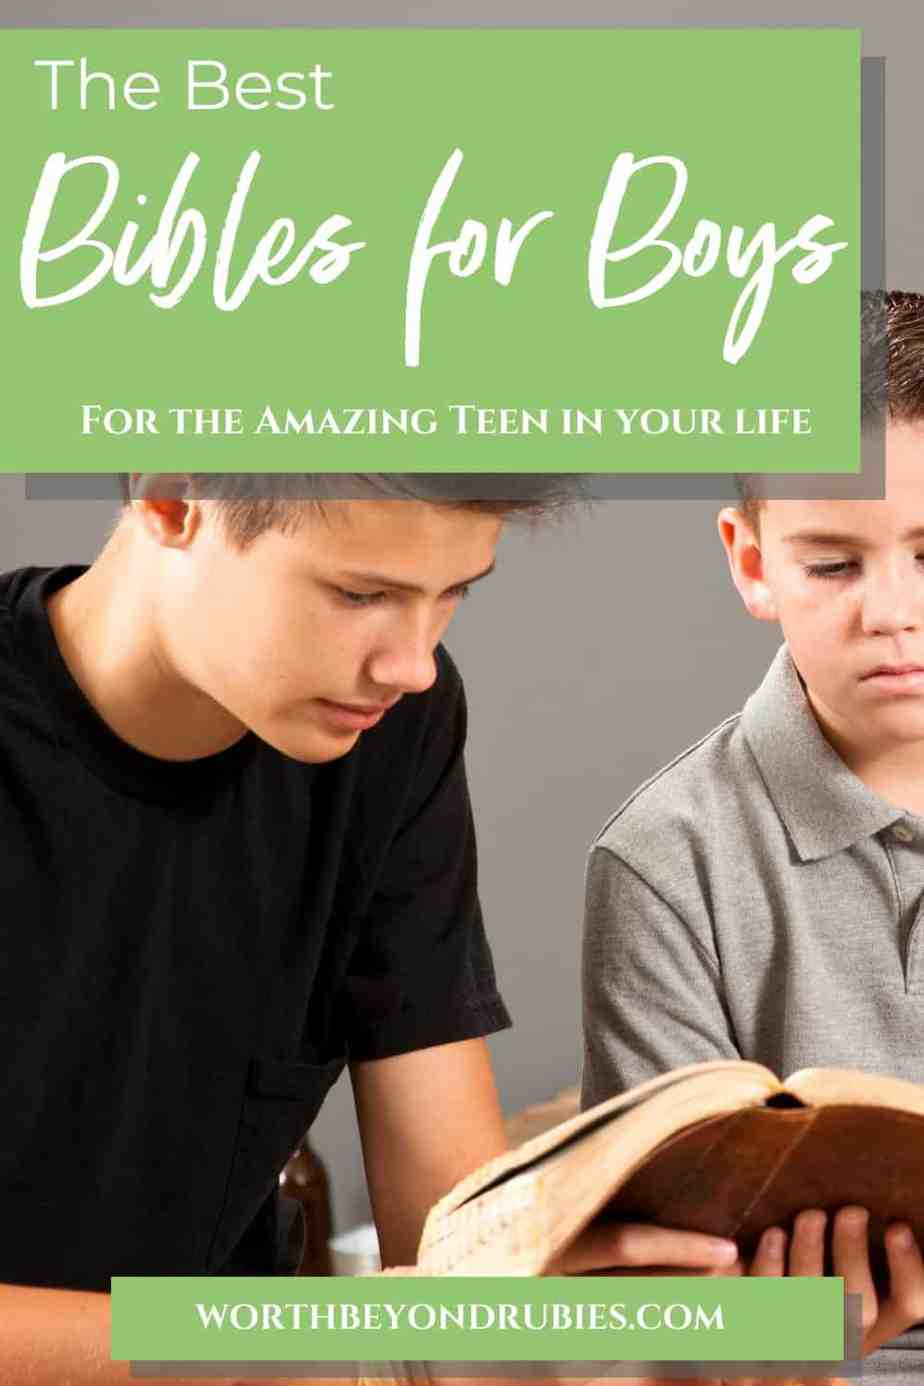 an image of a teen boy and a younger boy sitting together looking at a Bible and text that says The Best Bibles for Boys - For the Amazing Teen in Your Life